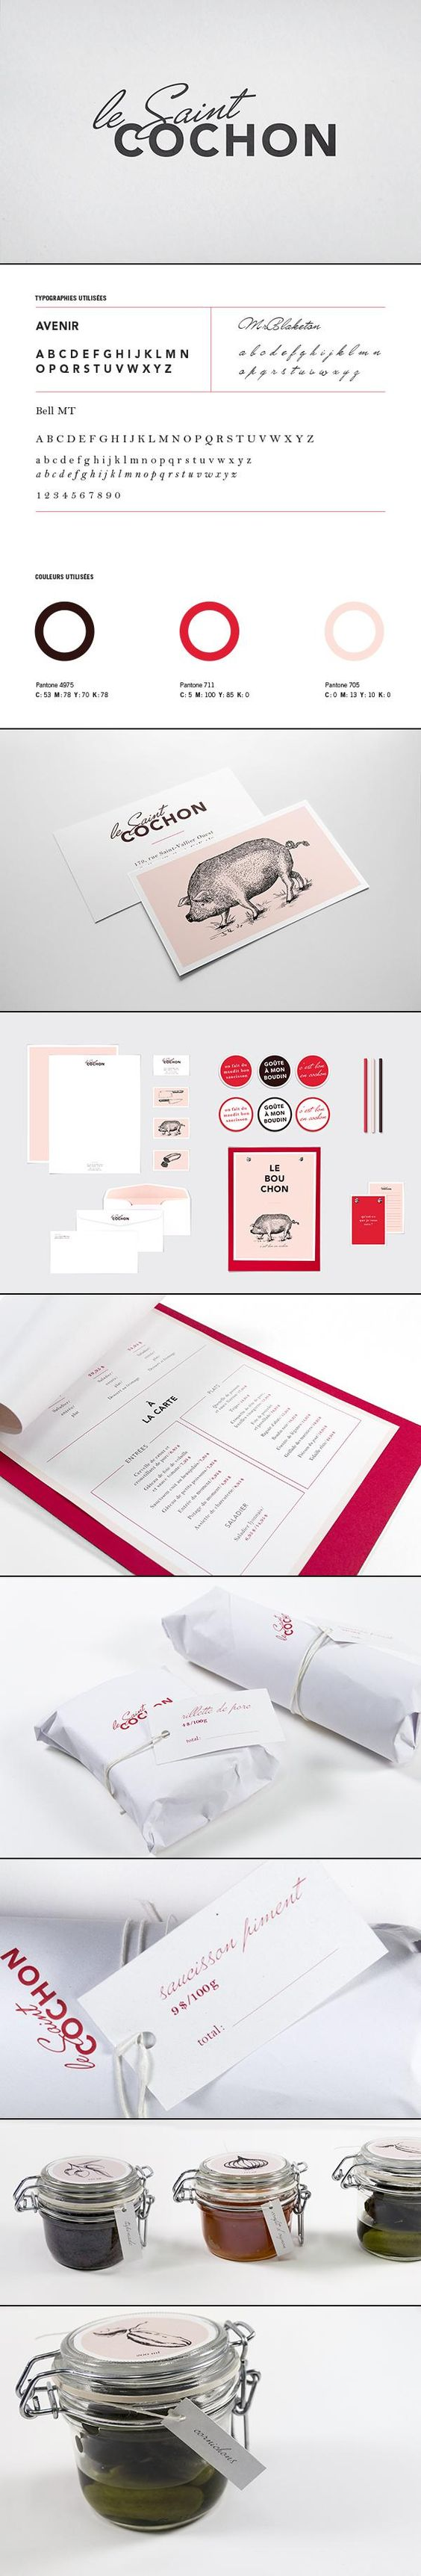 Le Saint Cochon uses memorable colors and vintage graphics to build a beautiful identity | #Branding #Pink: